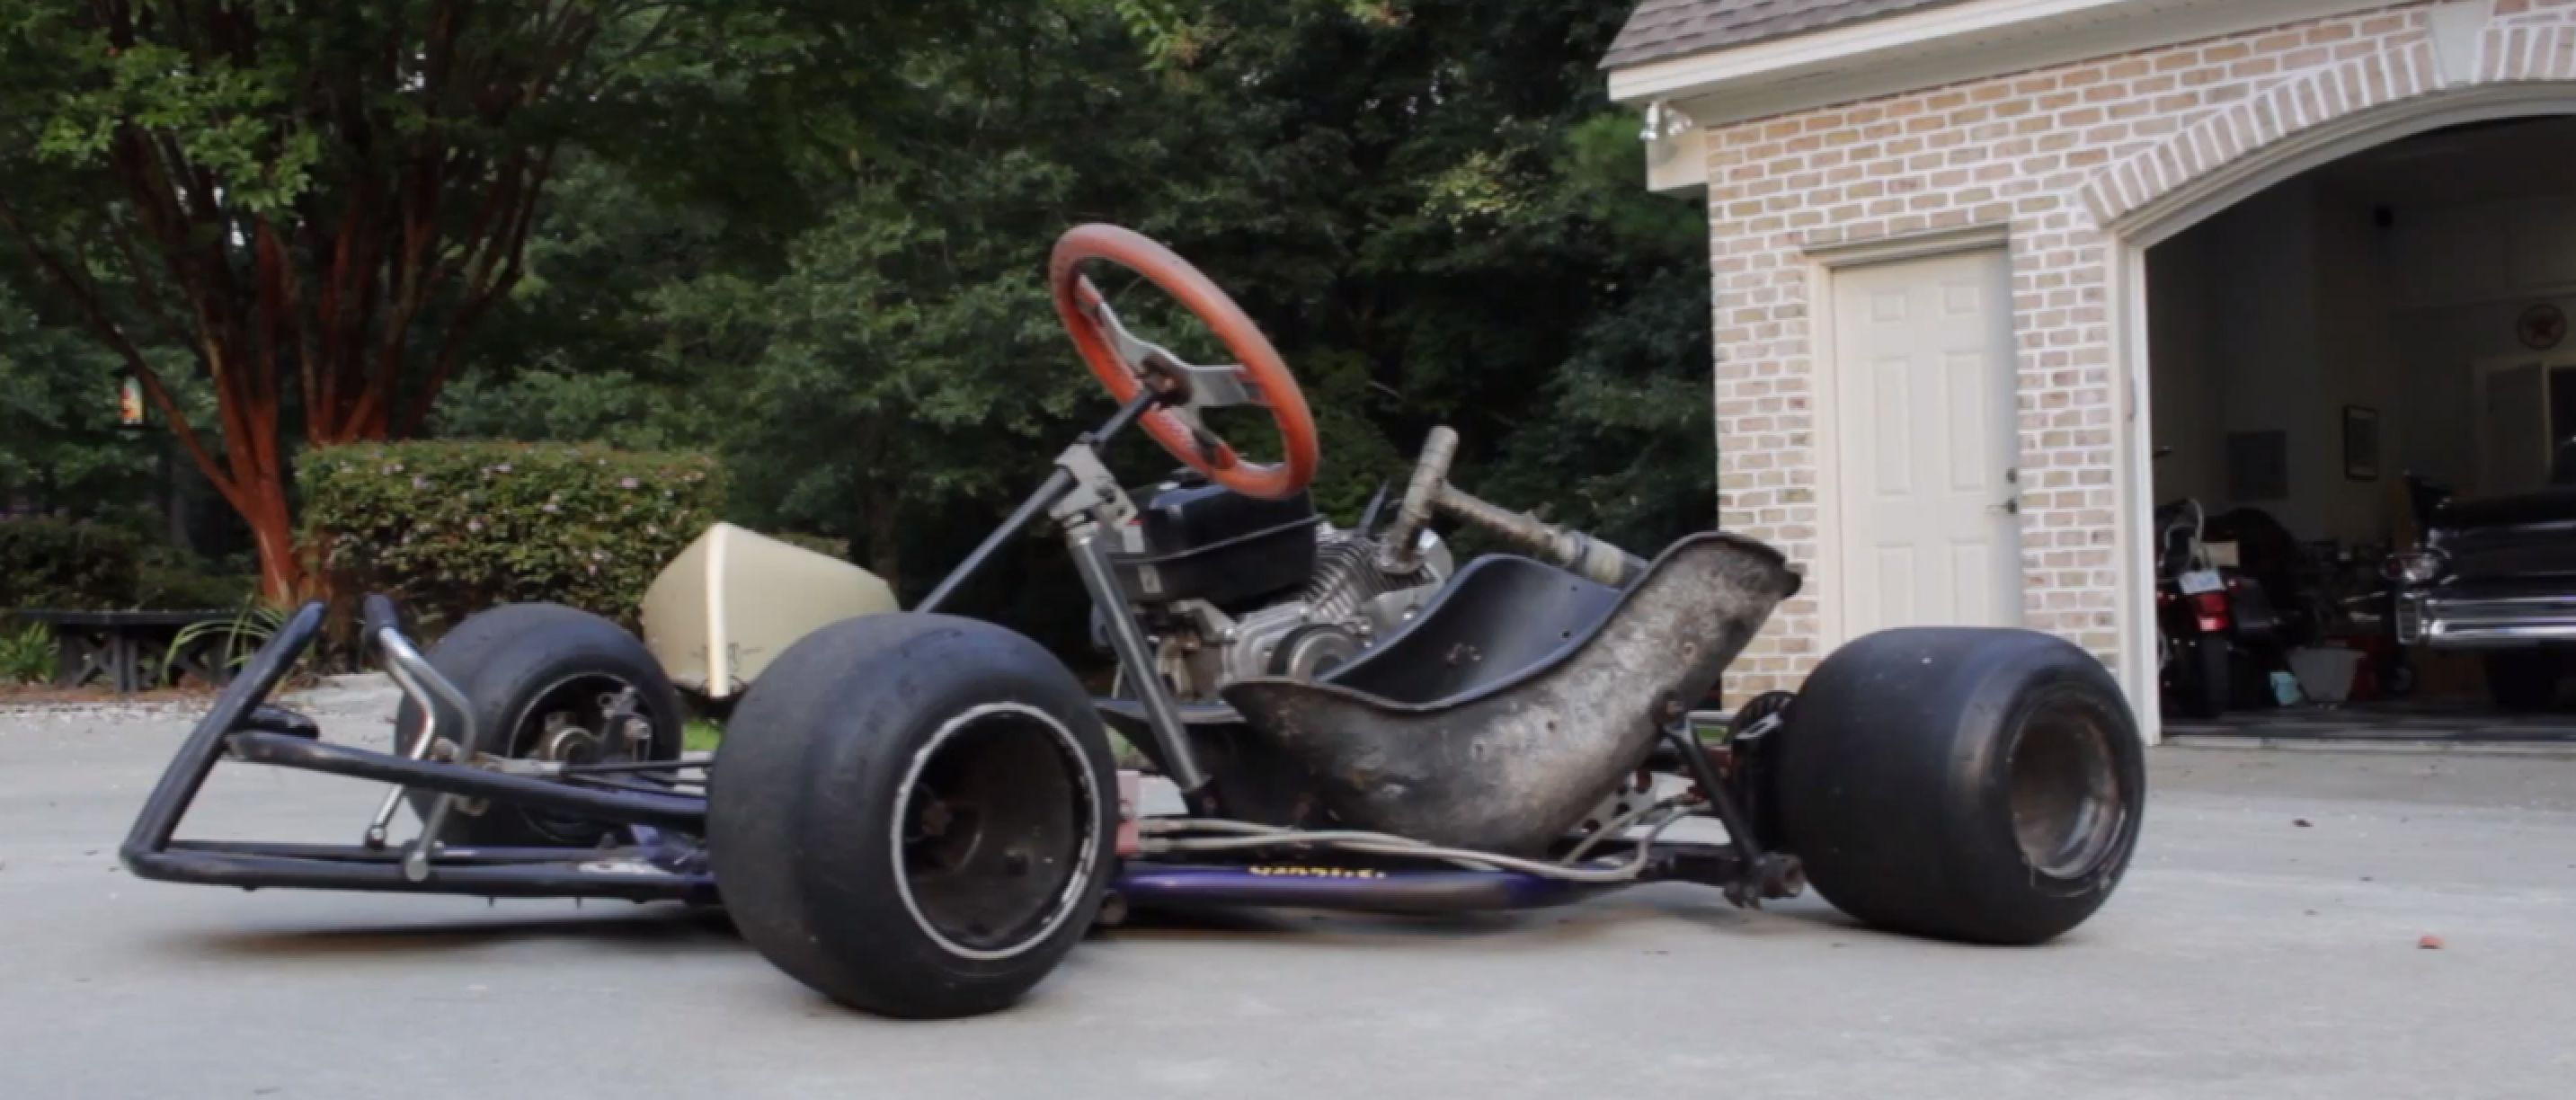 Pin by My Life at Speed on Humor | Go kart, Stuff to buy, Racing